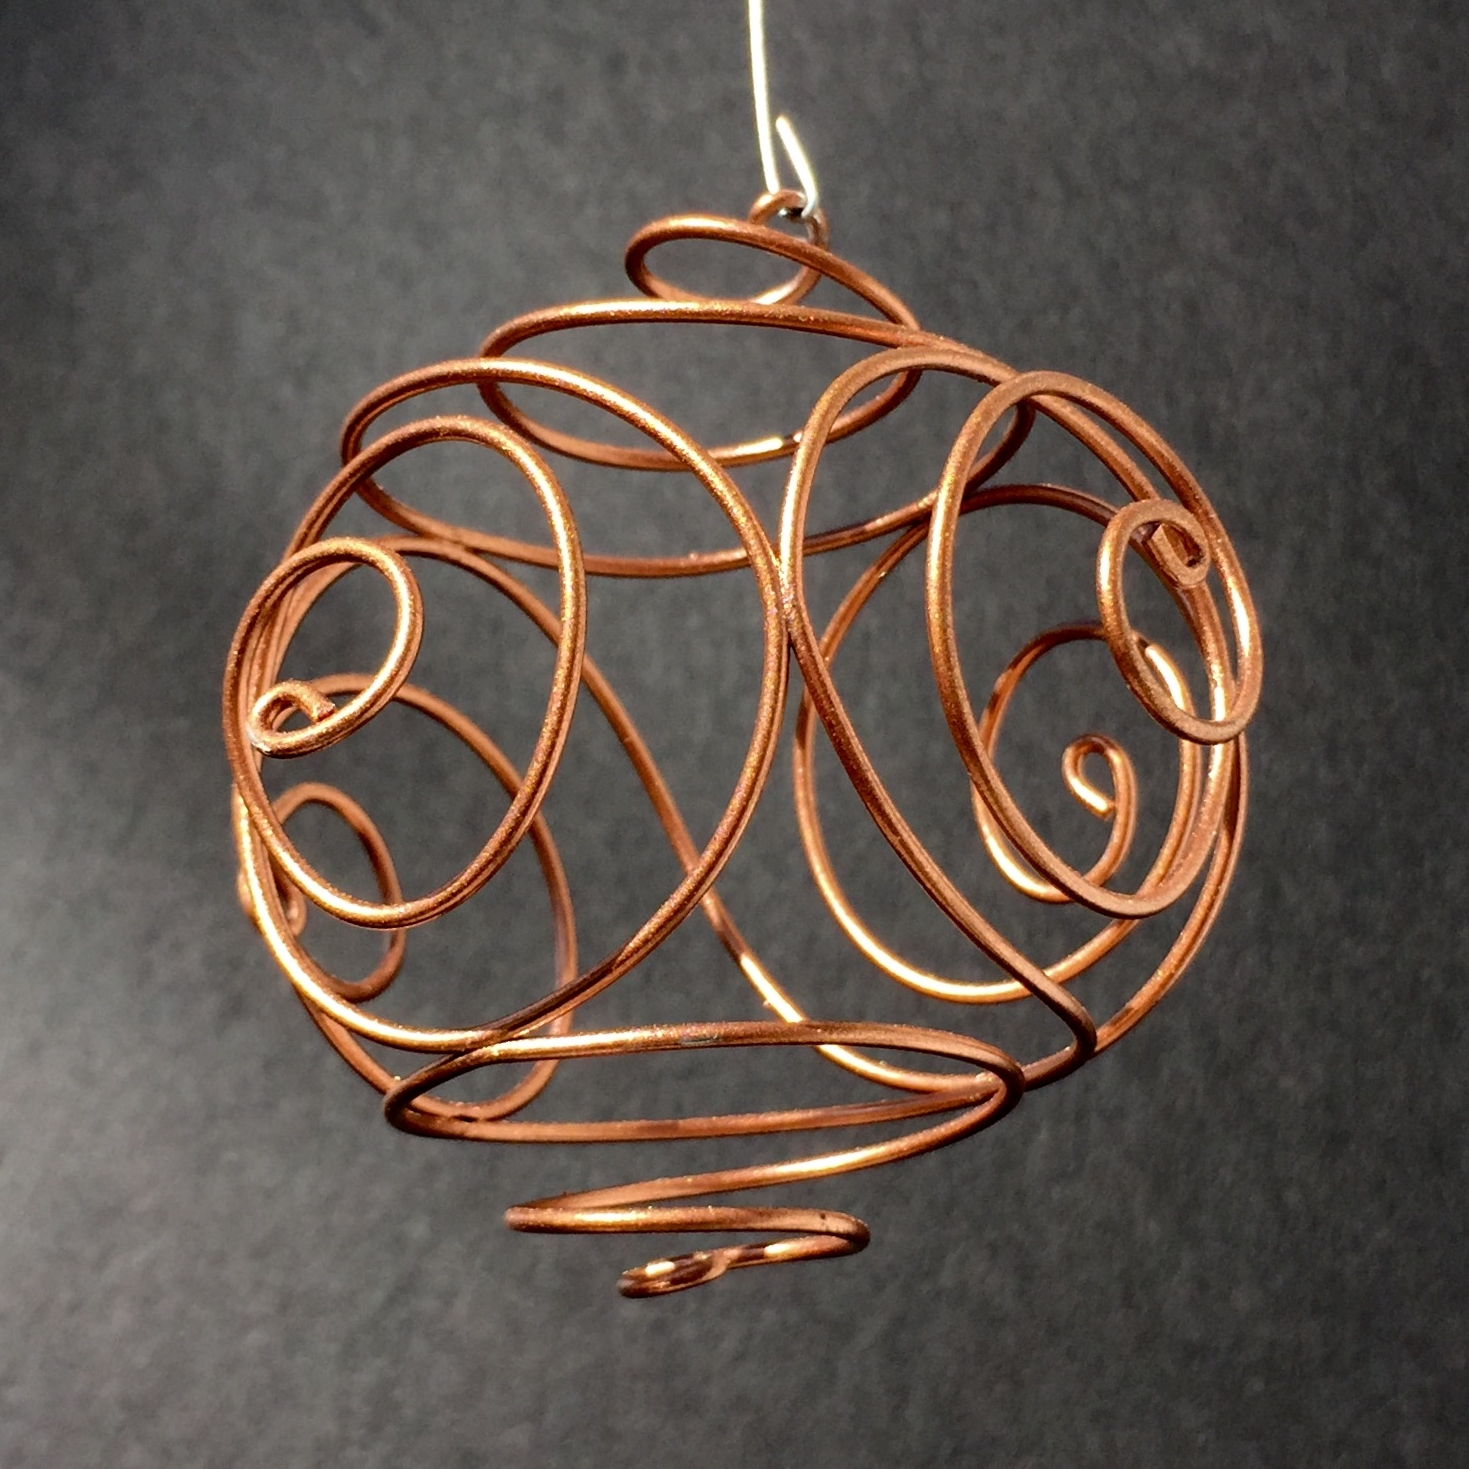 Handmade wire ornaments in copper, silver, and gold — STEVENBUCKART.COM